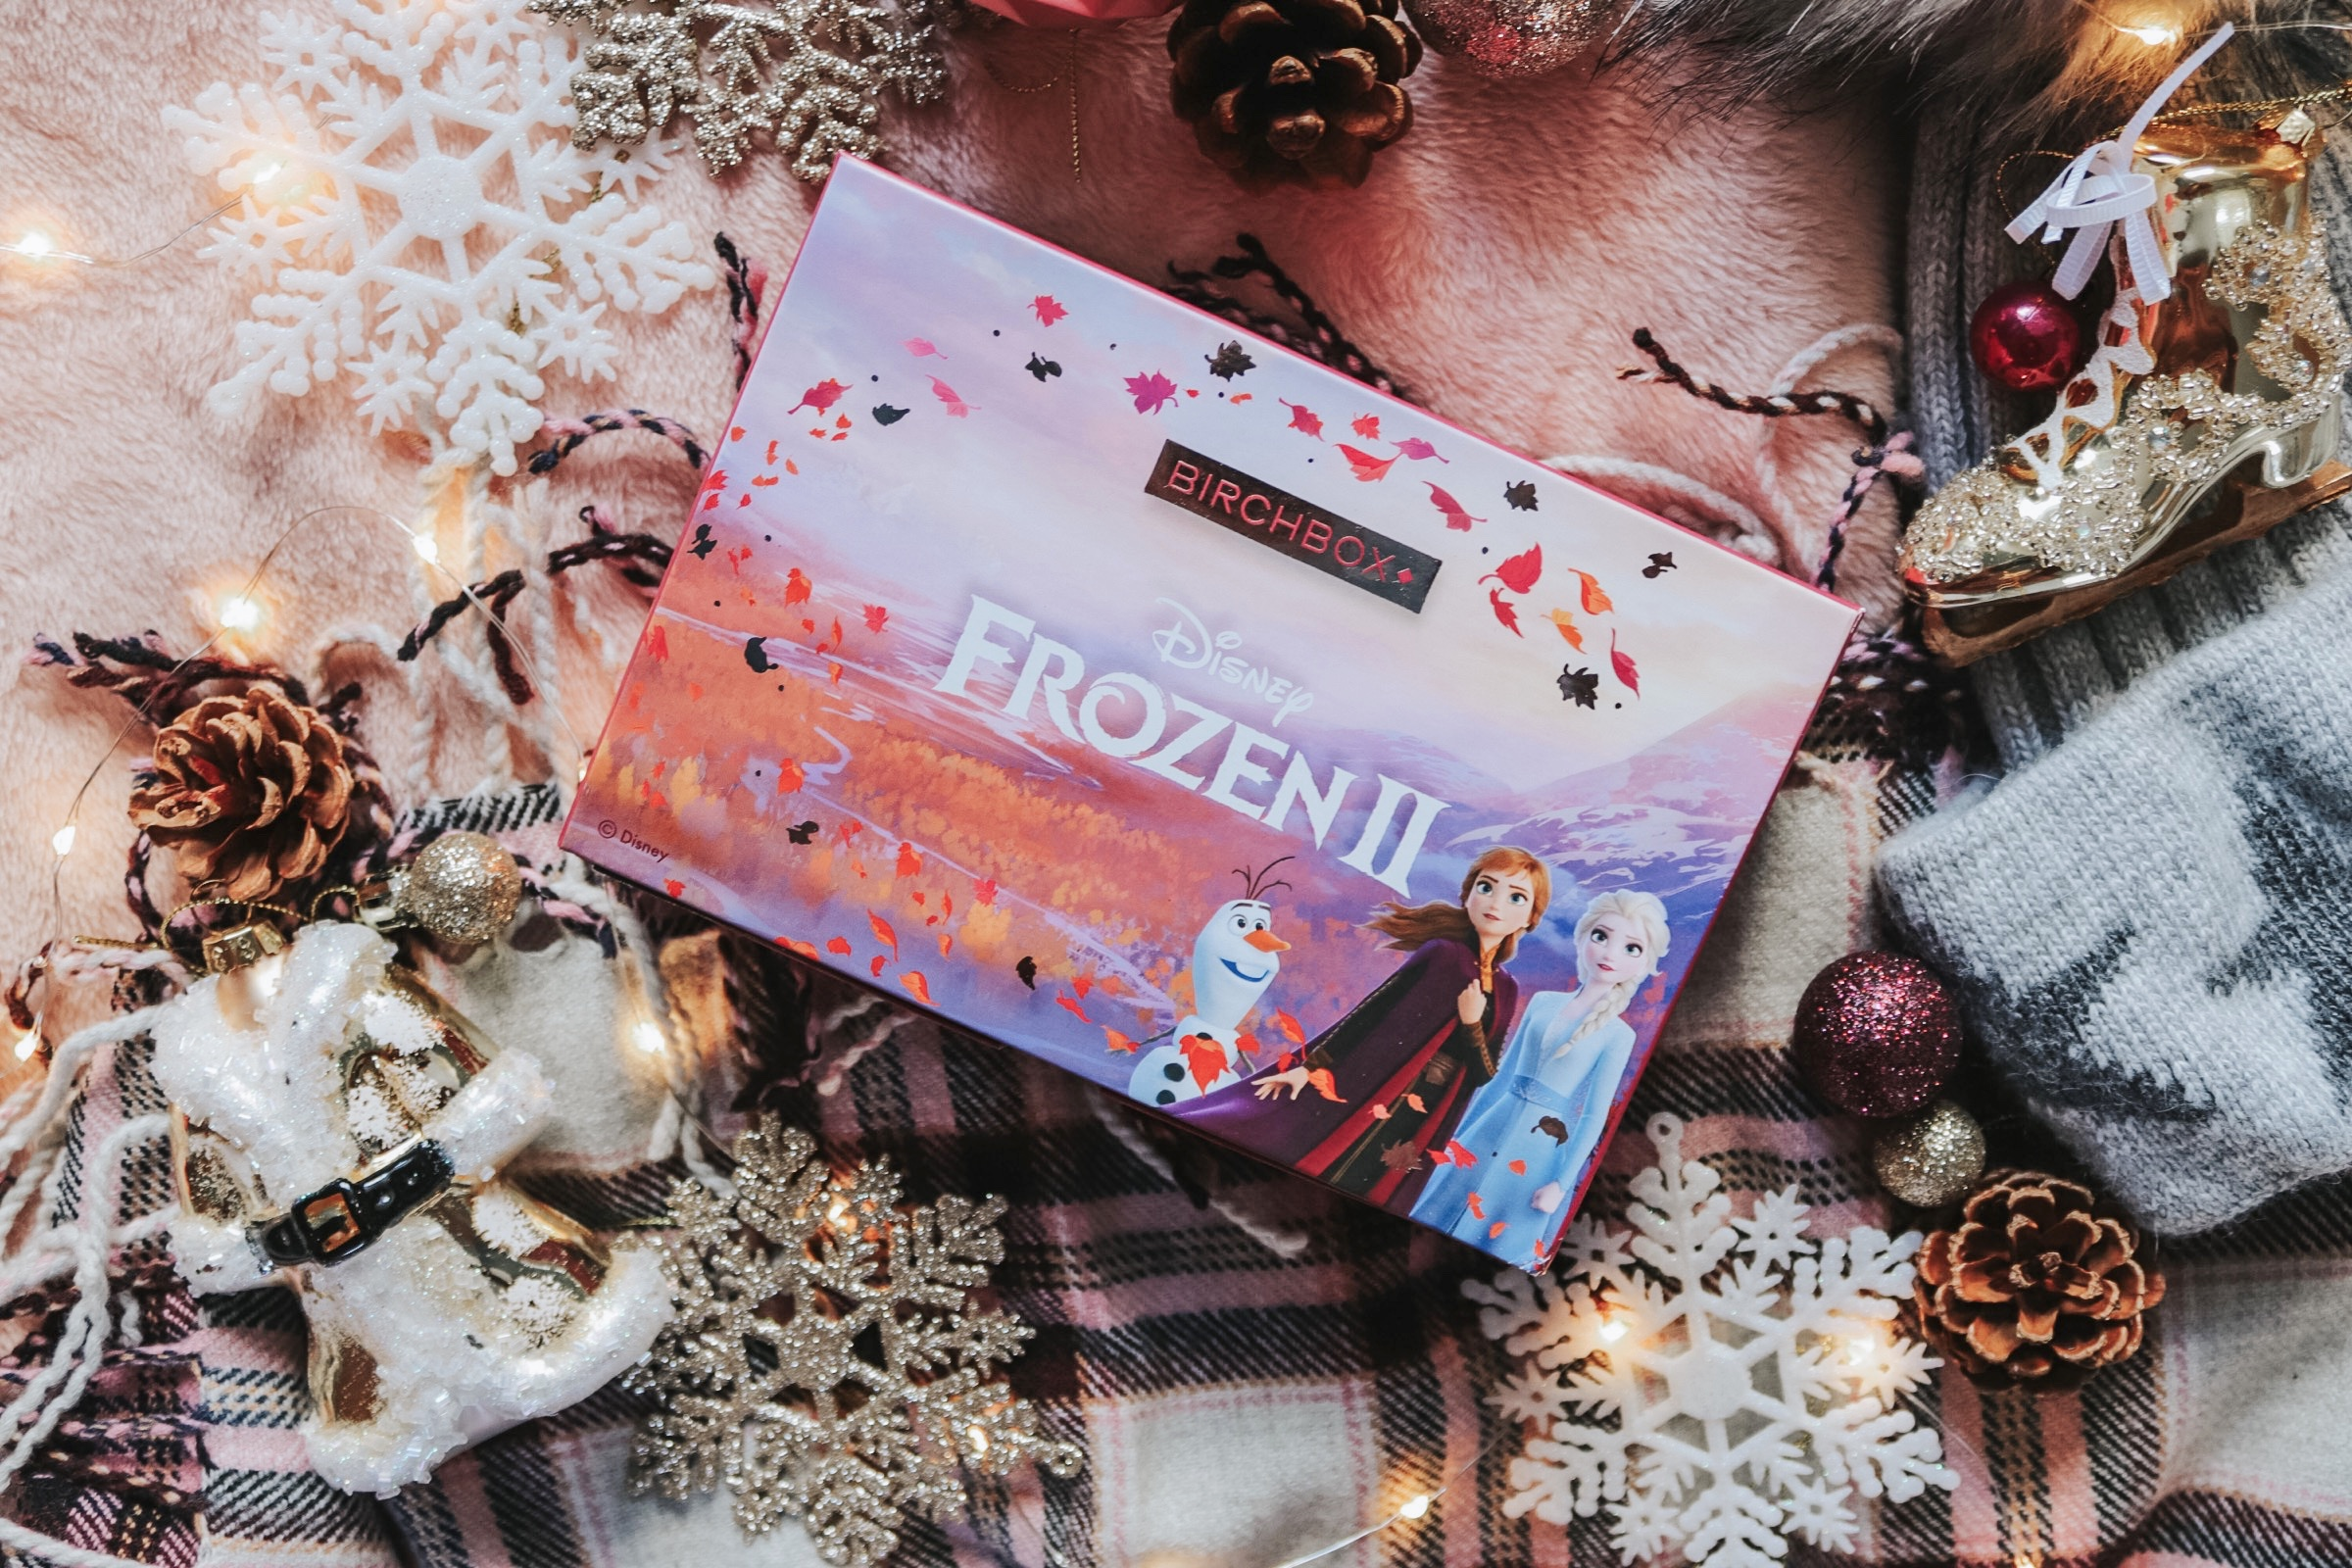 BIRCHBOX NOVEMBER 2019: FROZEN II – REVIEW